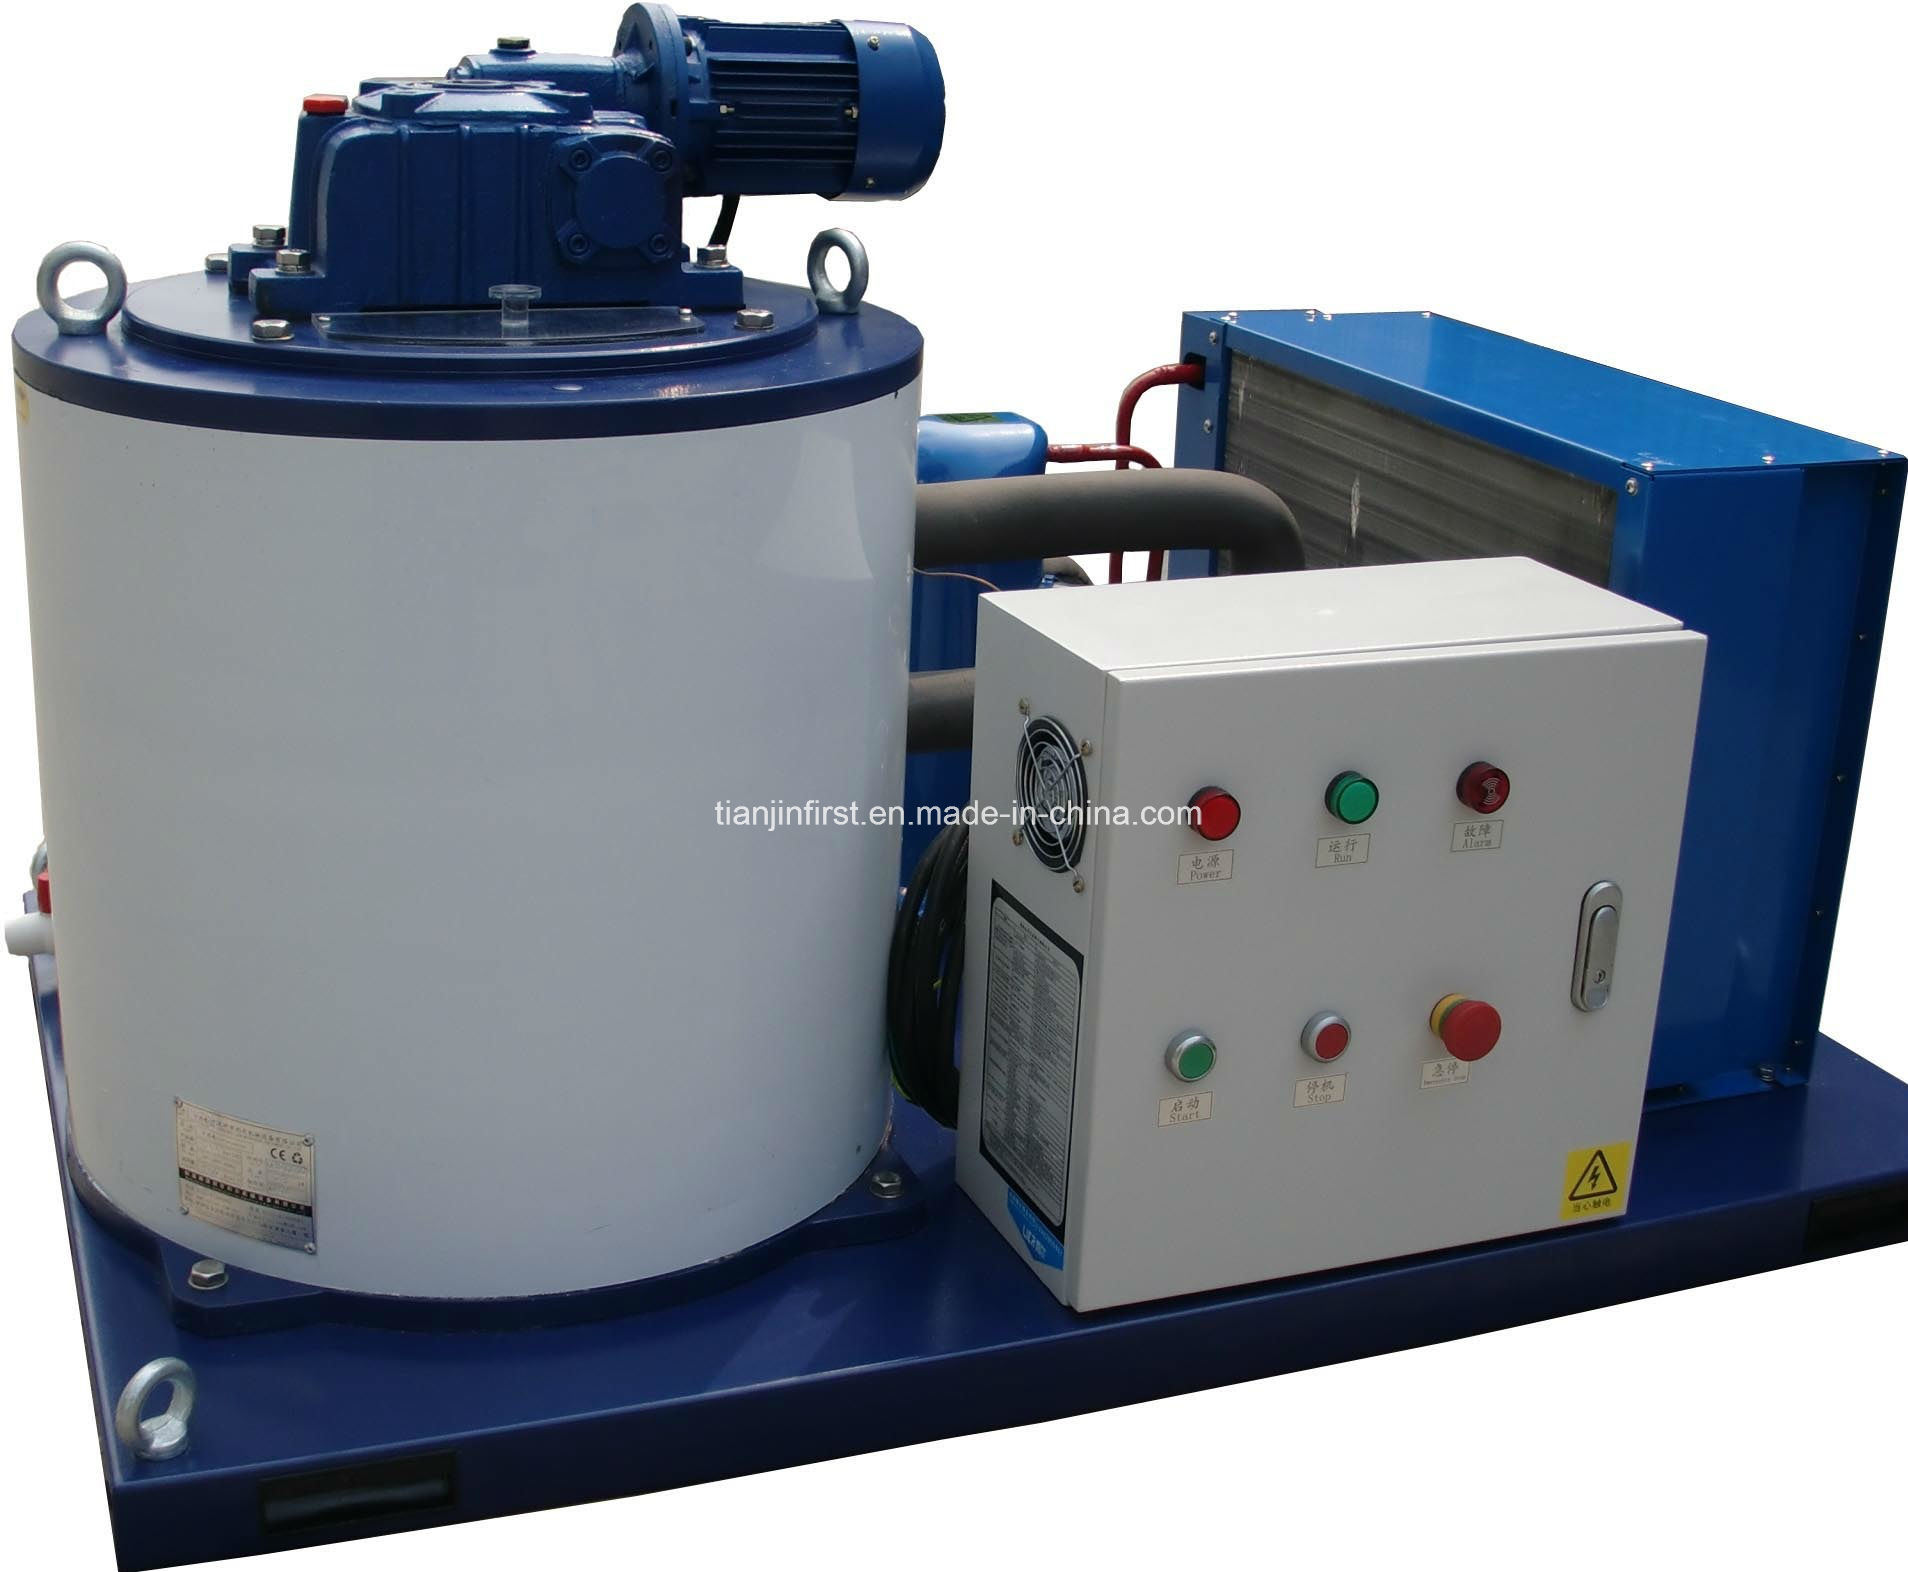 Commercial Rance Snow Flake Ice Machine 1t/24h for China